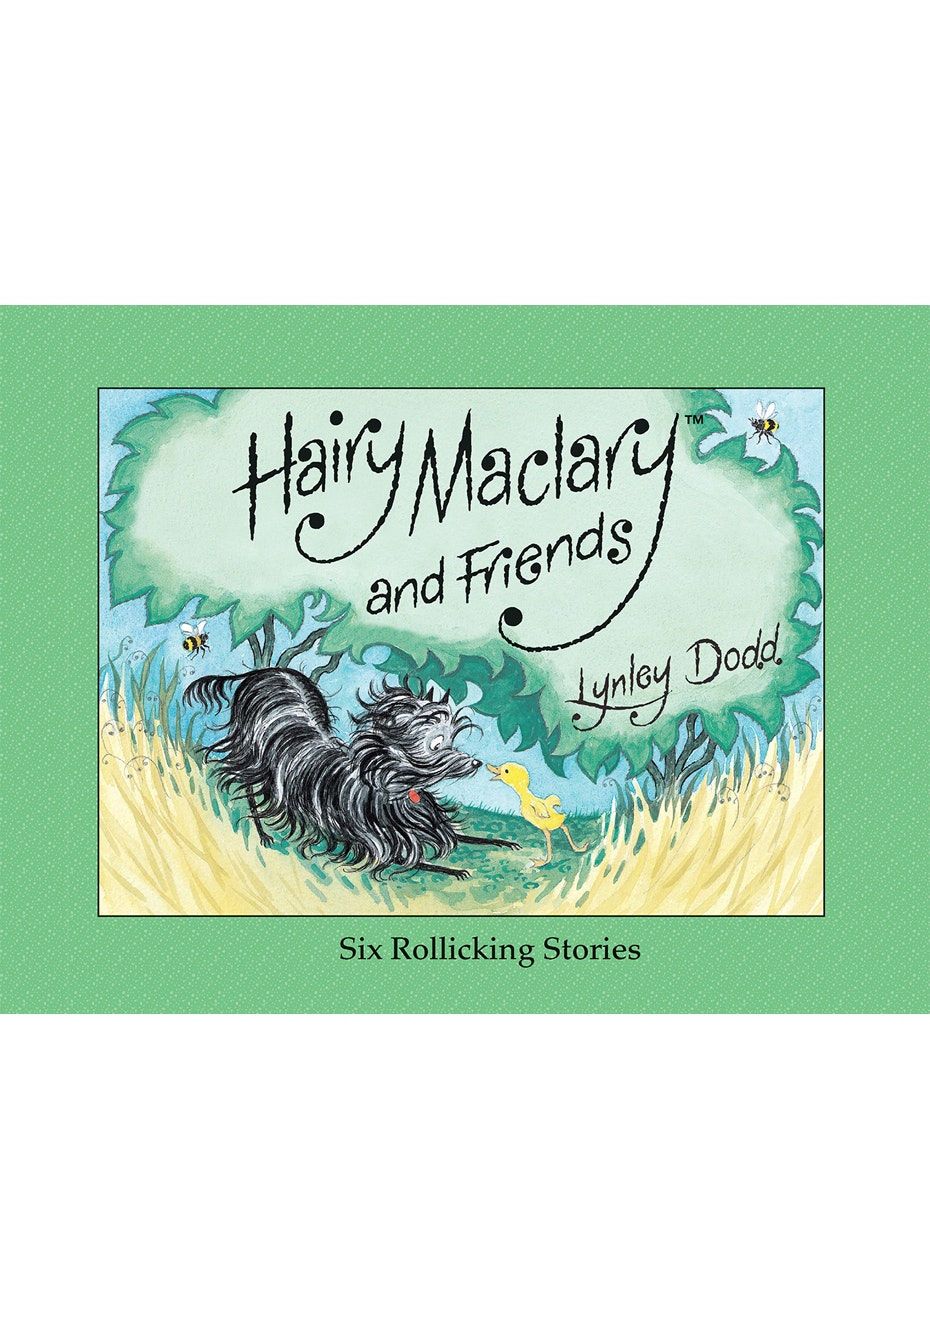 Hairy Maclary & Friends: Six Rollicking Adventures